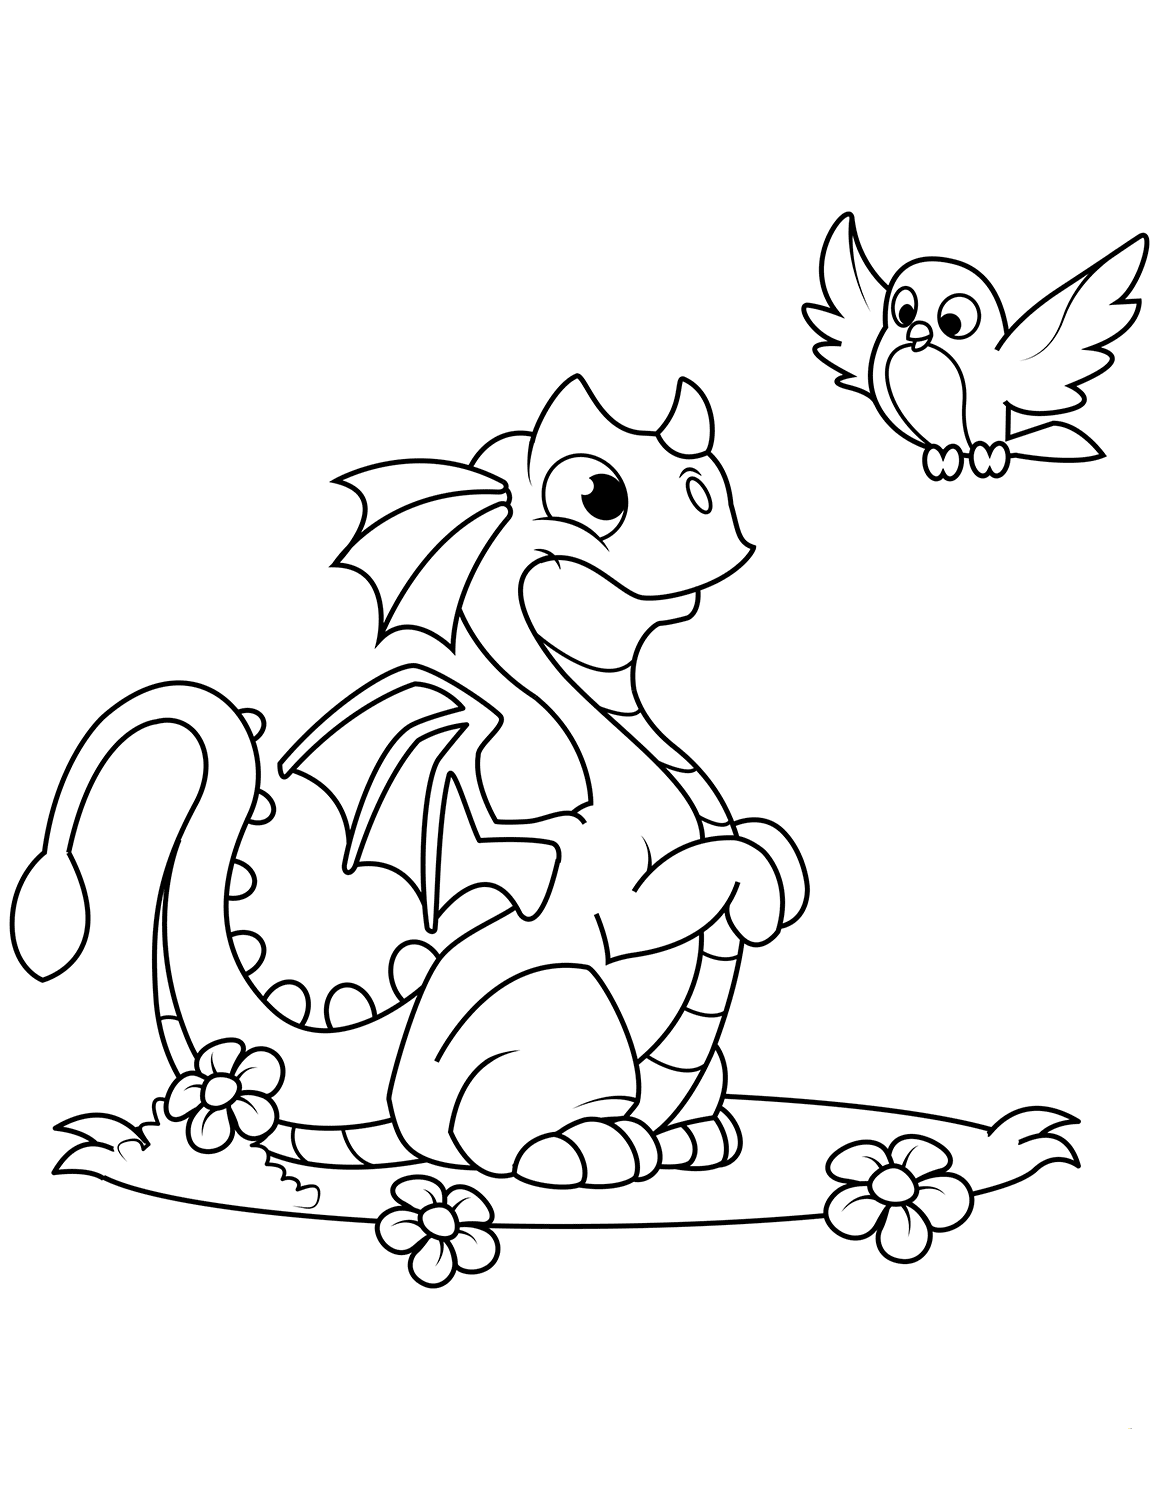 coloring pages of dragons cute dragon and chick coloring page free printable dragons pages coloring of